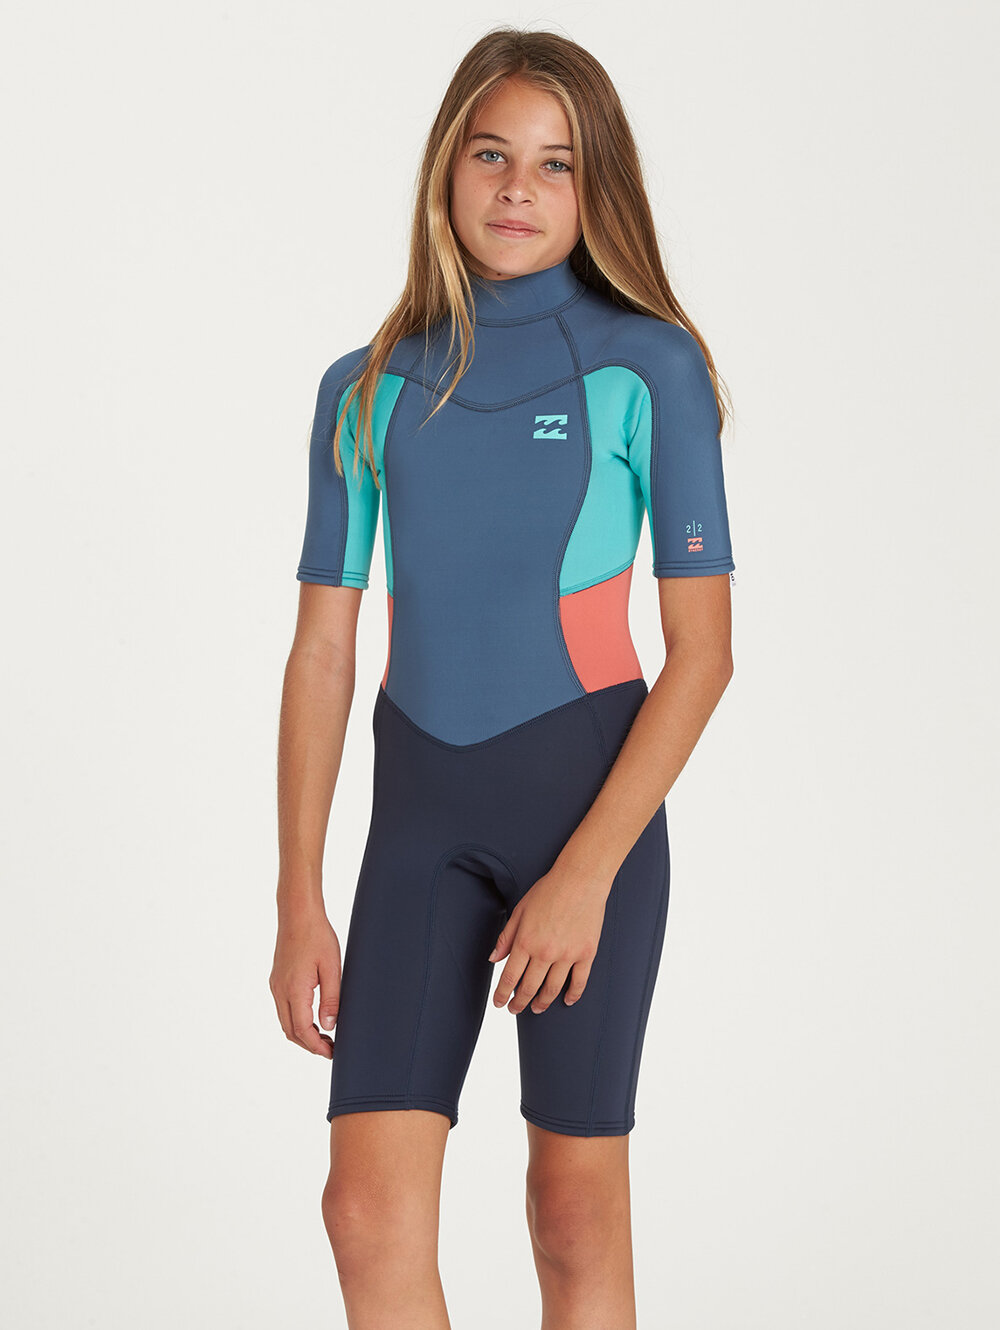 246f730faf84 2MM GIRLS SYNERGY SPRING - Girl's Wetsuits | Kid's Steamers, Springsuits &  Rashies | Wet Suit | Sale - BILLABONG S18